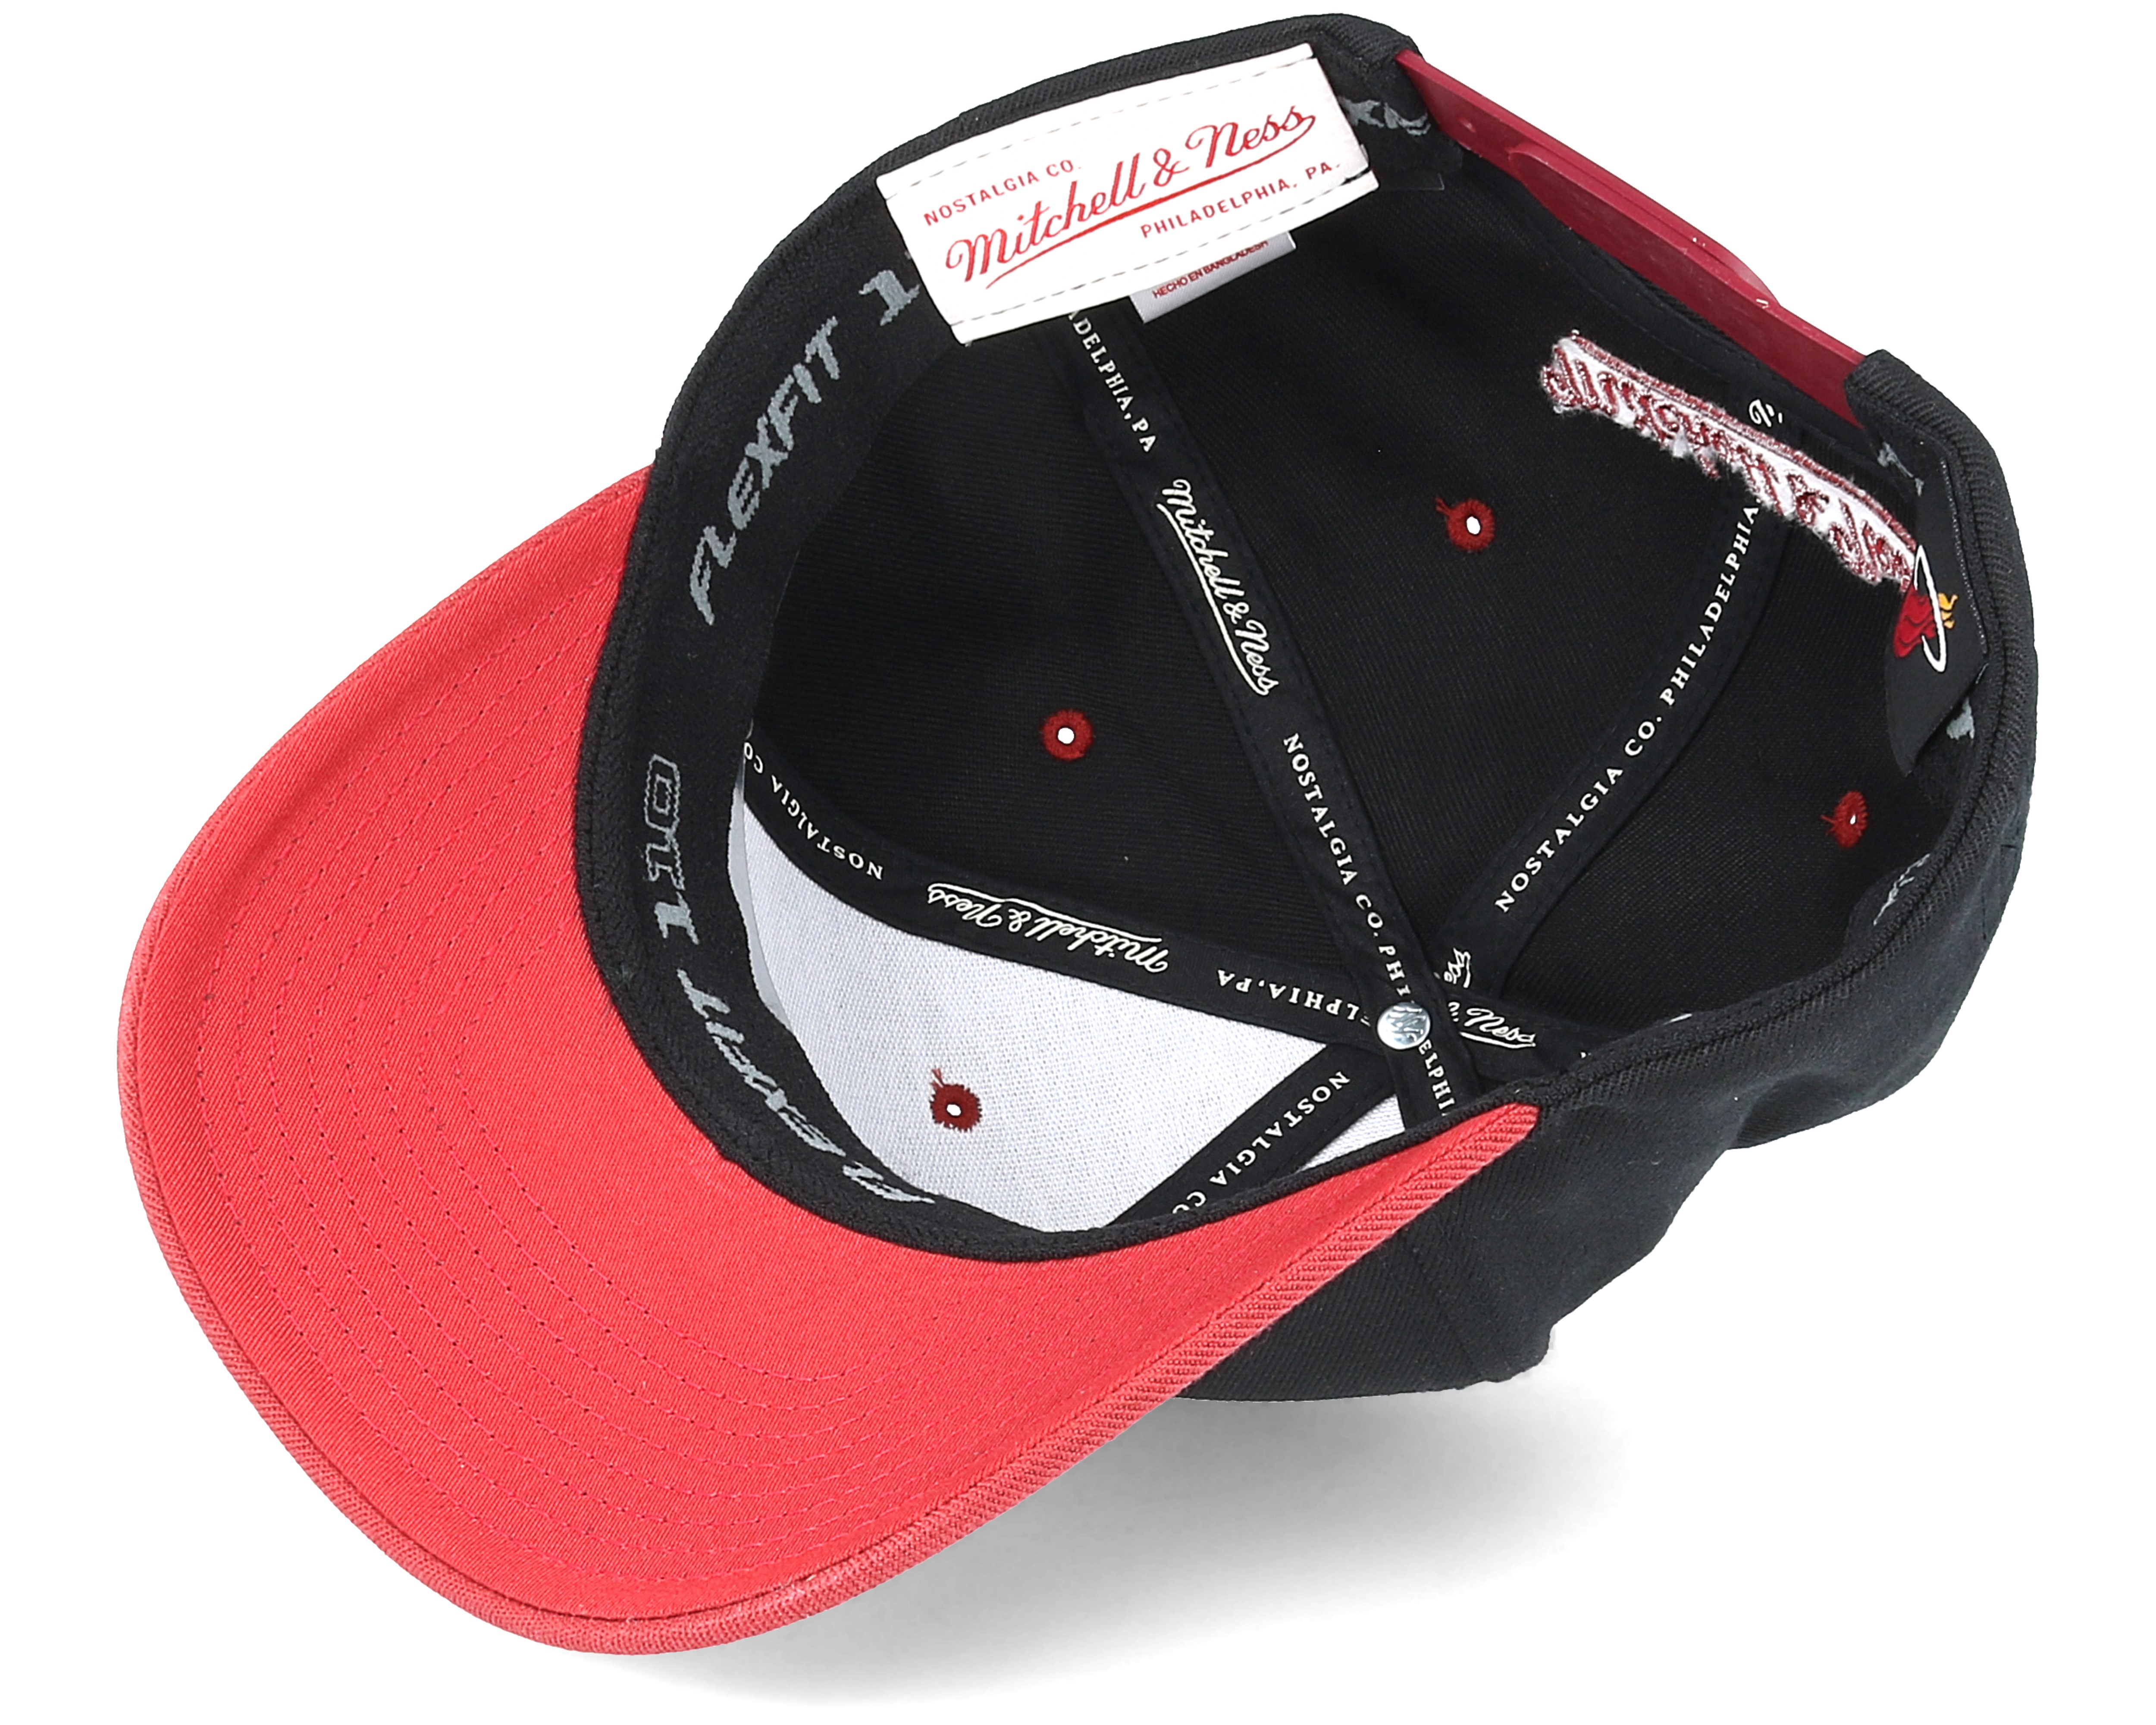 newest collection 6ee99 2a579 Miami heat team store - Dish network refer a friend